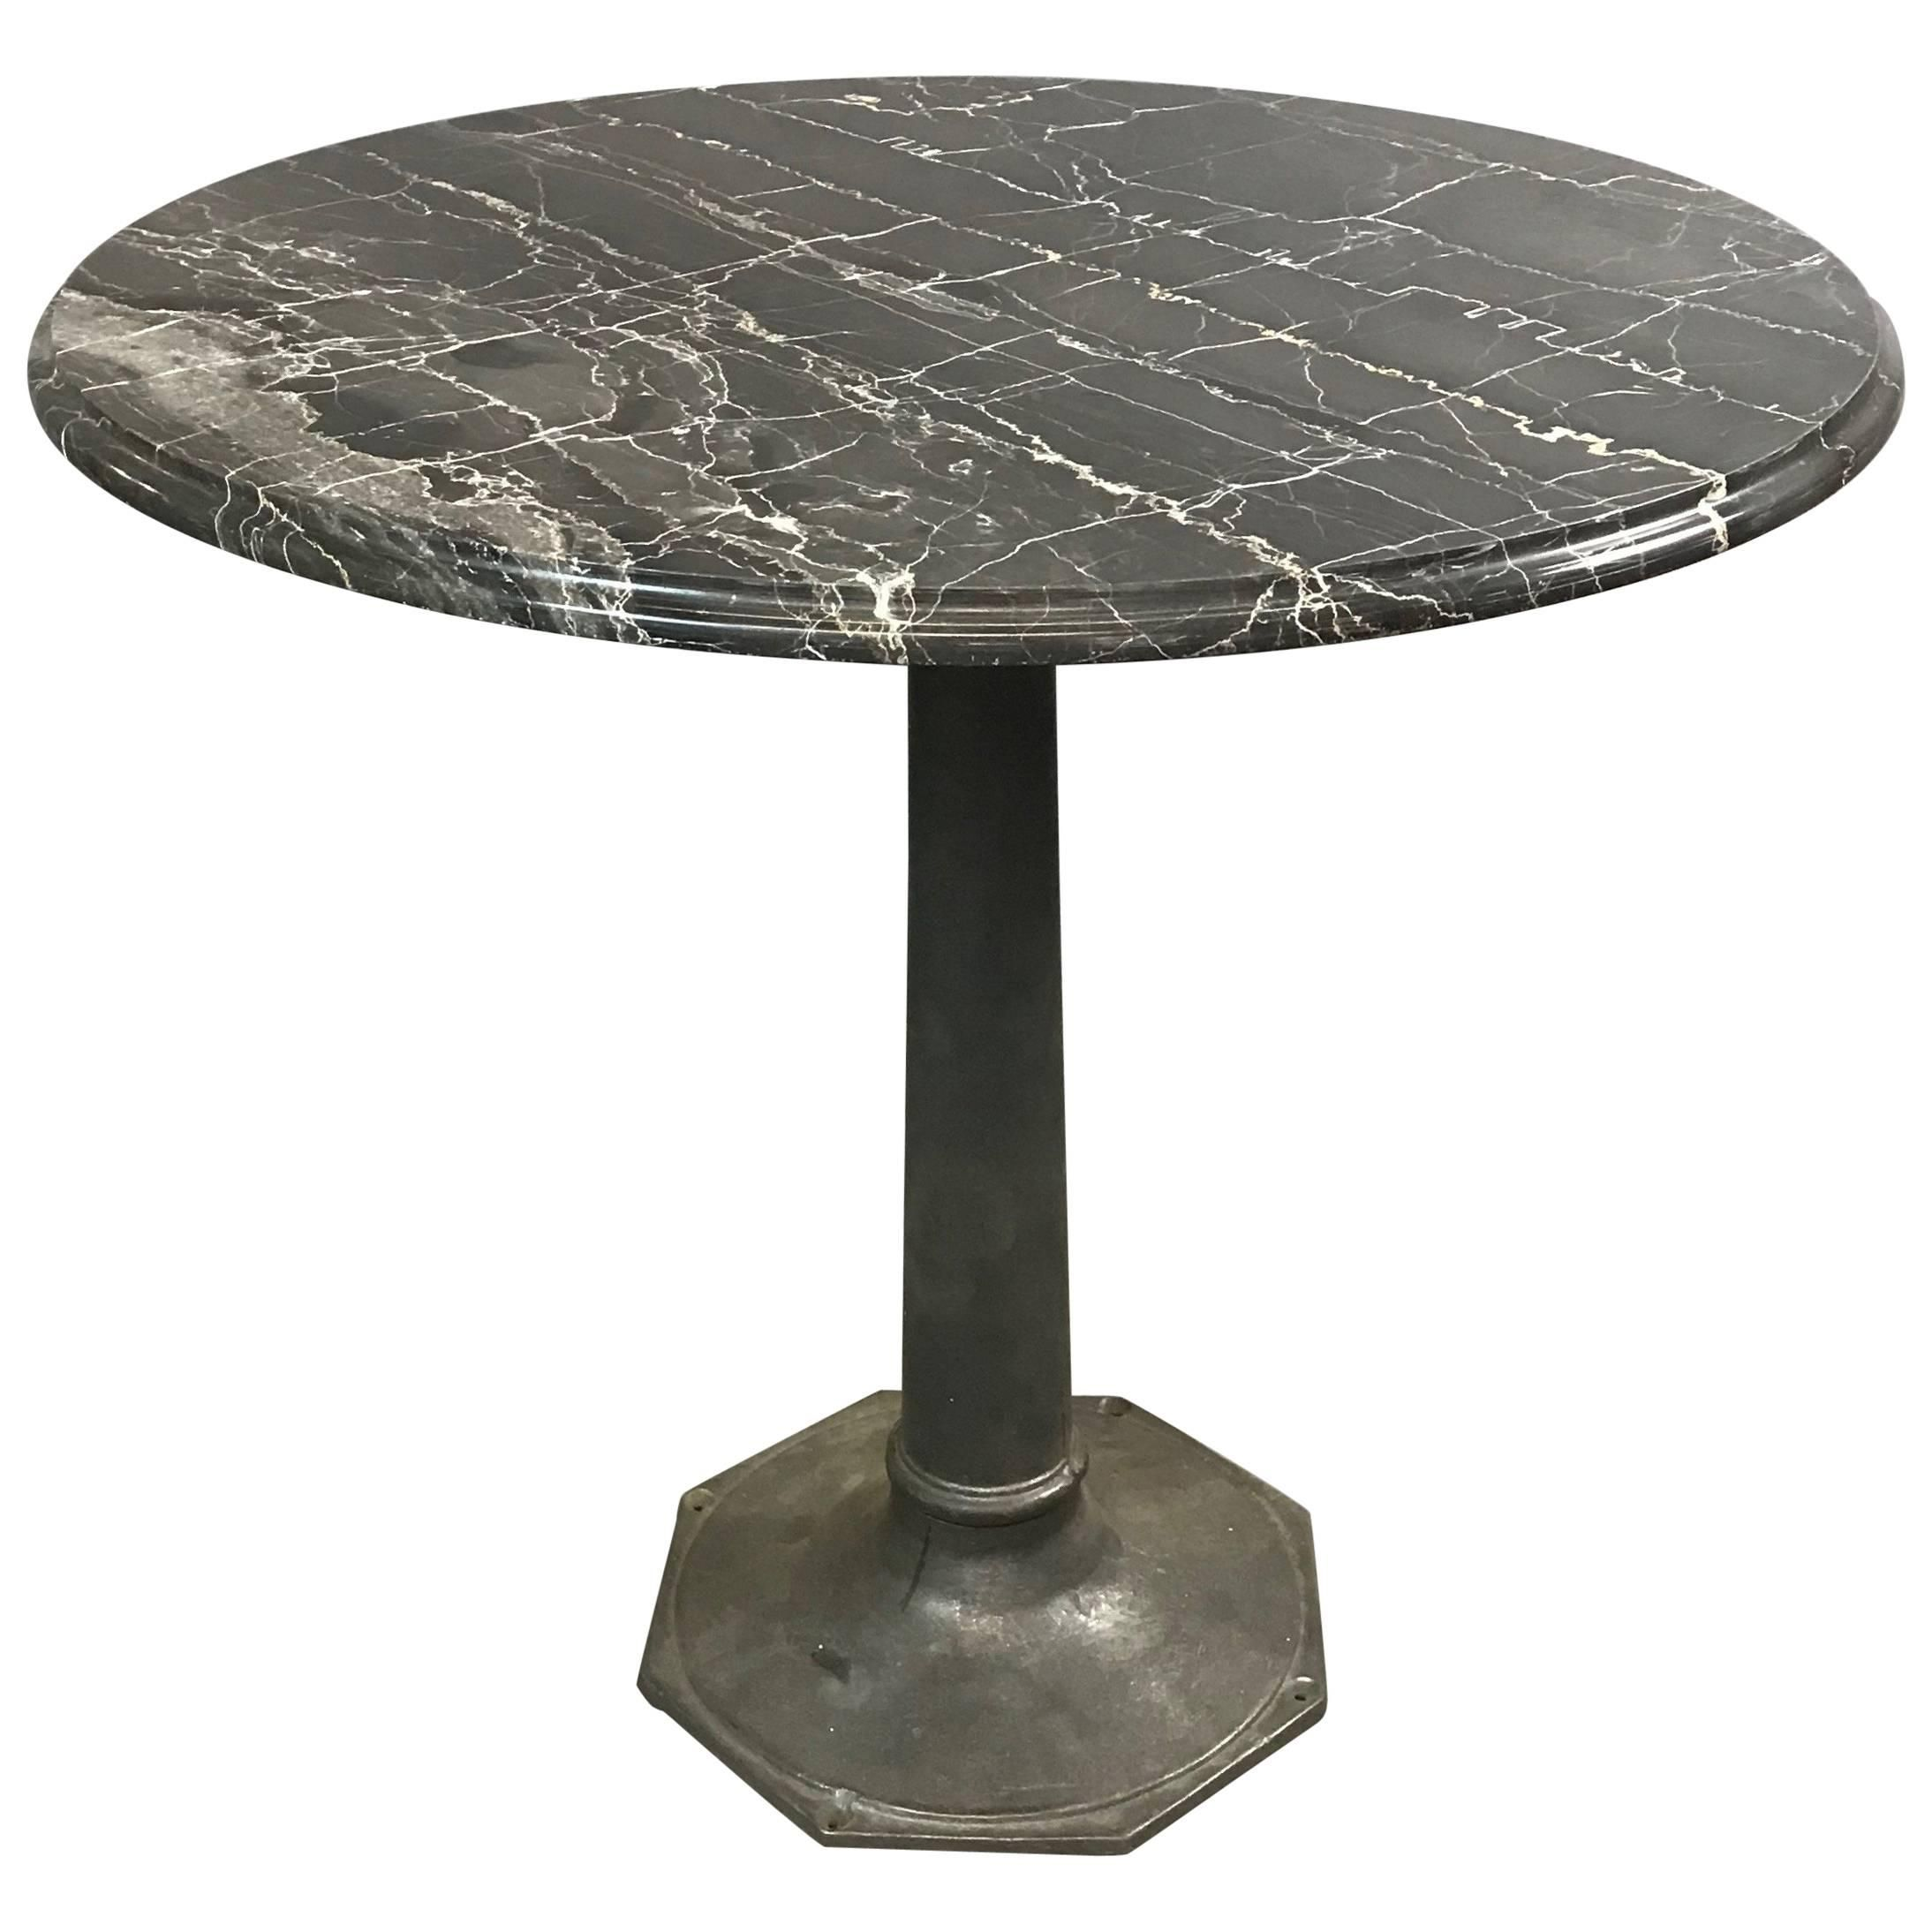 Industrial Black Marble Cast Iron Pedestal Café Bristro Dining Table For Sale at 1stdibs (With ...